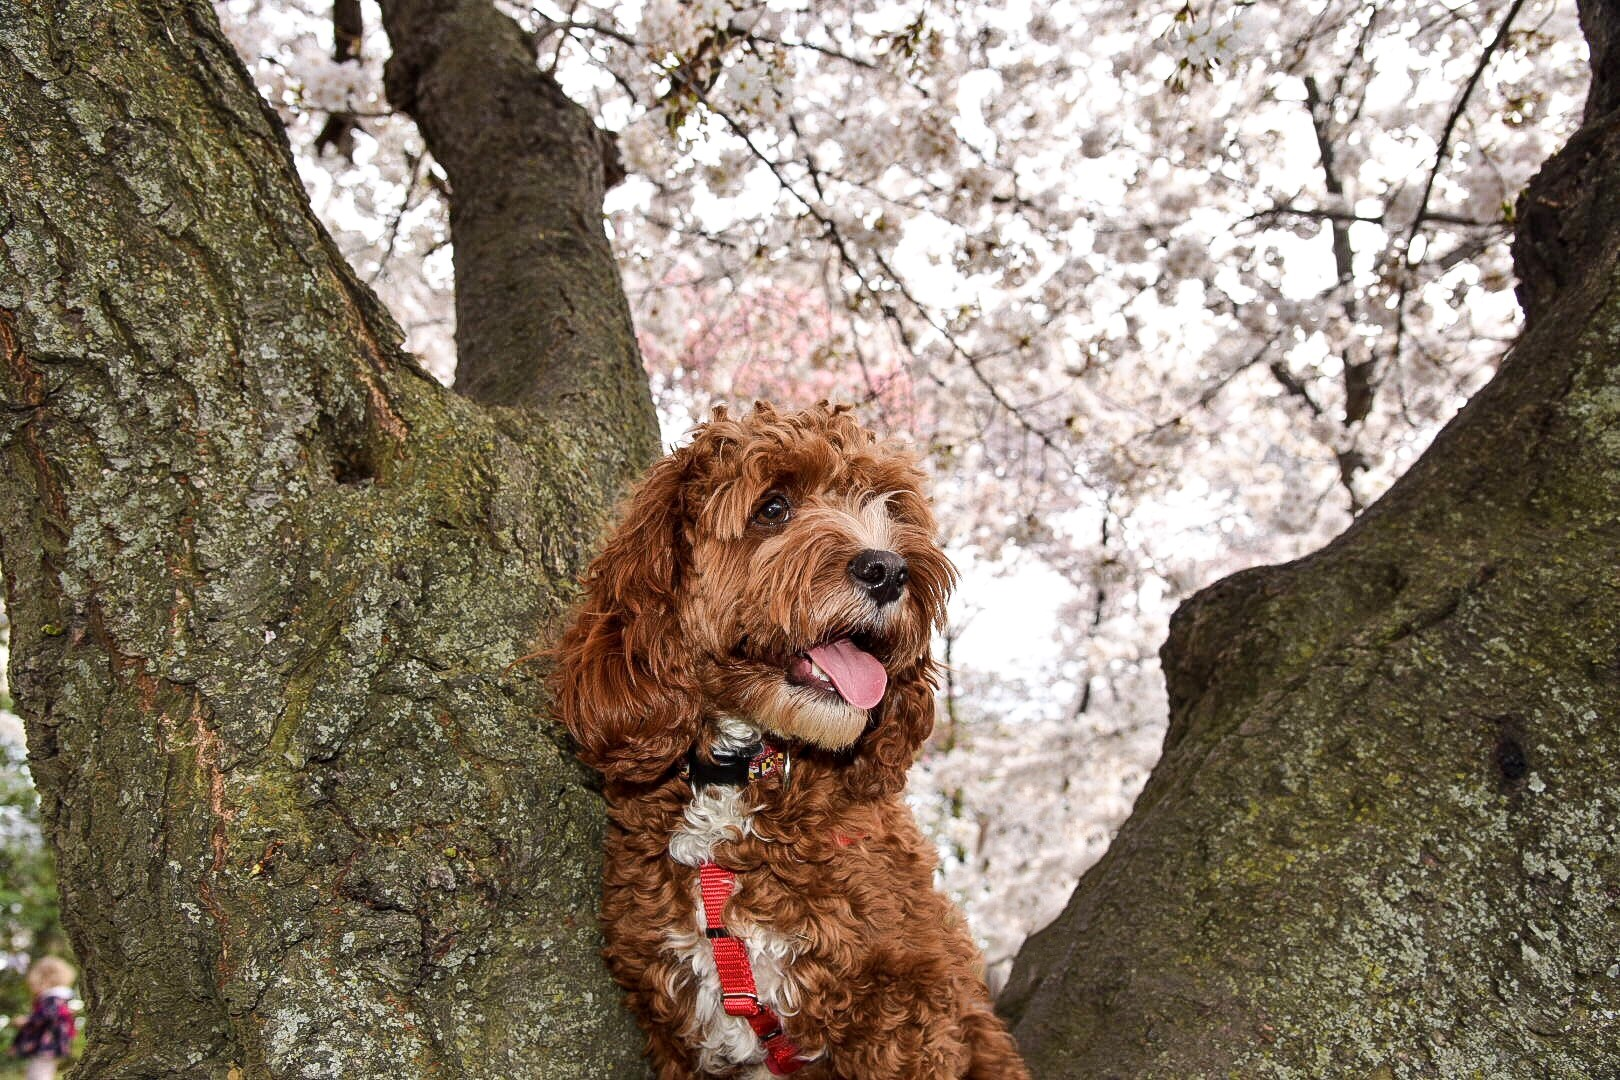 In honor of National Pet Day (which is basically like Christmas around here!) we checked in on a few of our favorite Instagram stars to see what they've been up to lately, and we noticed many of them had paid a visit to D.C.'s beloved blossoms. So for this week's special RUFFined Spotlight, we give you some adorable four-legged admirers of the cherry blossoms! (Image: via IG user @kicking.back.with.kaden /{ }instagram.com/kicking.back.with.kaden/){ }